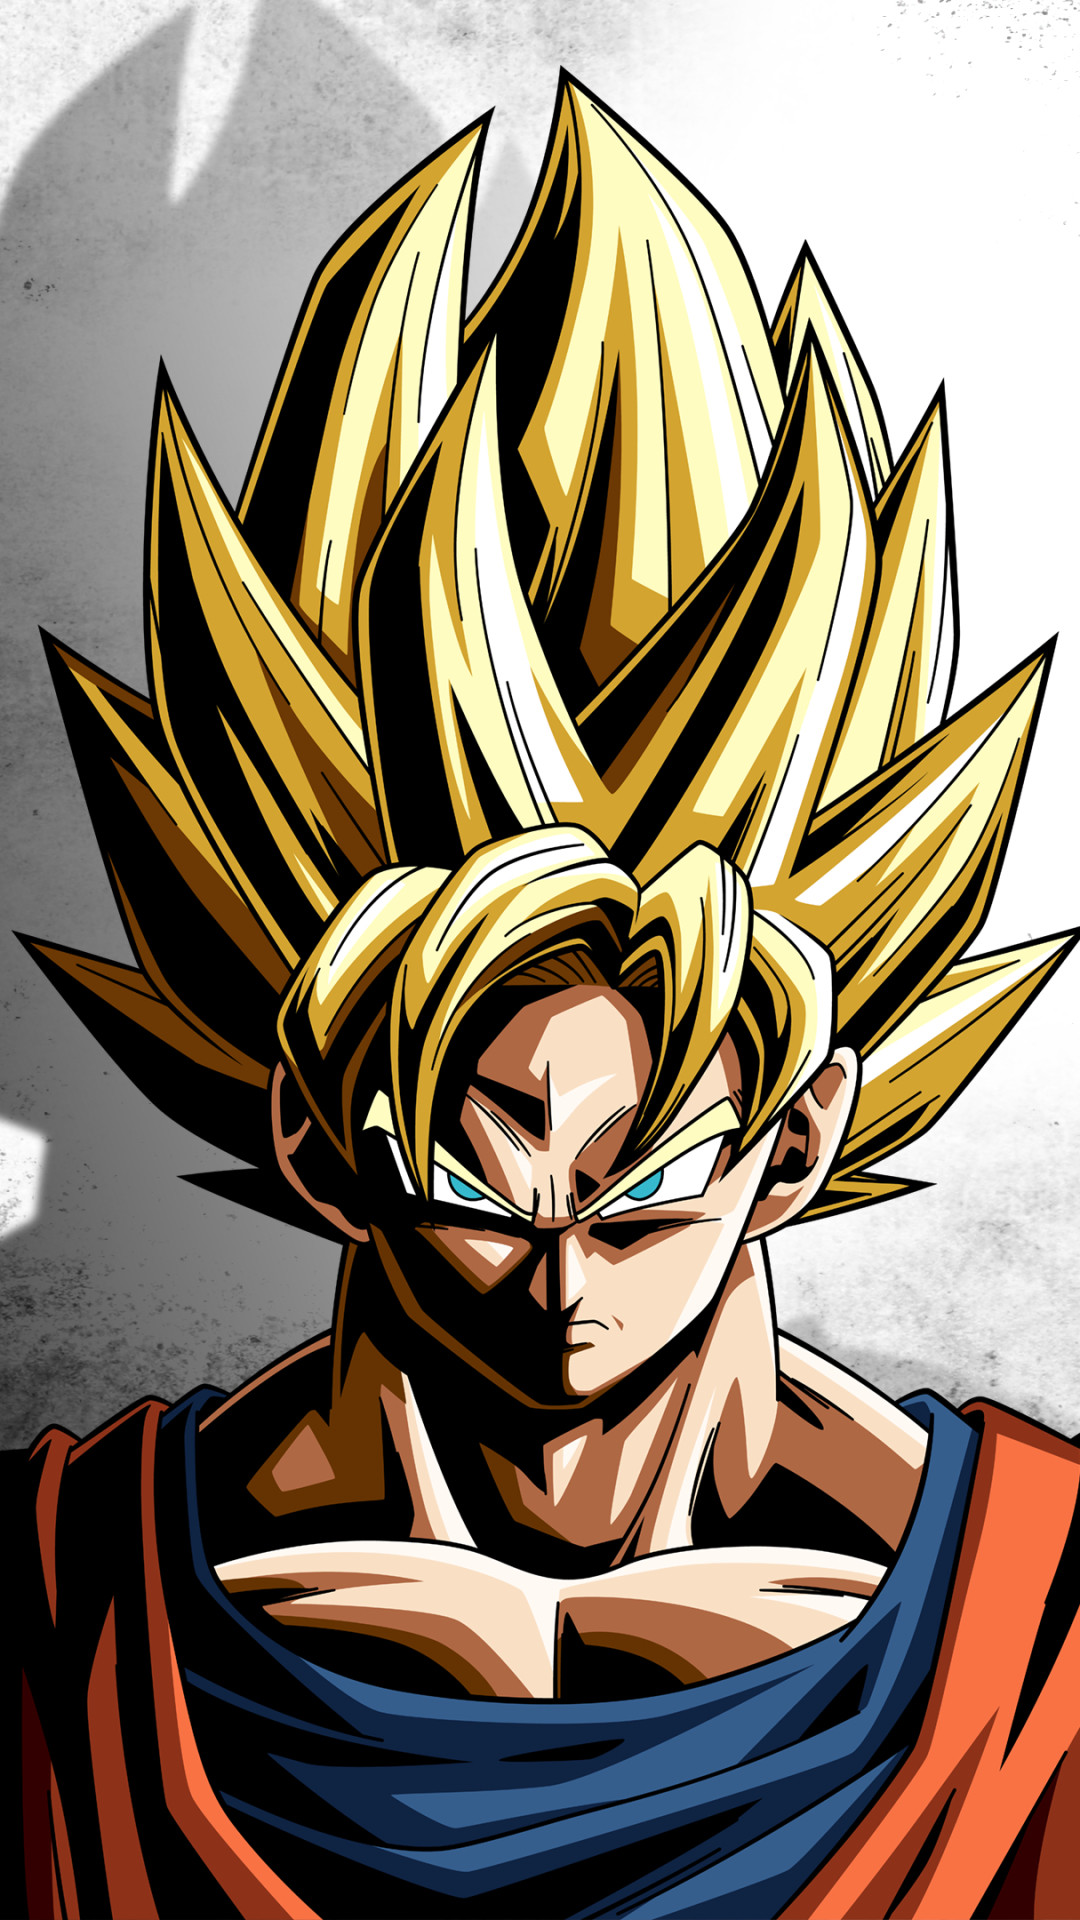 dragon ball z iphone wallpaper iphone wallpaper 64 images 7906